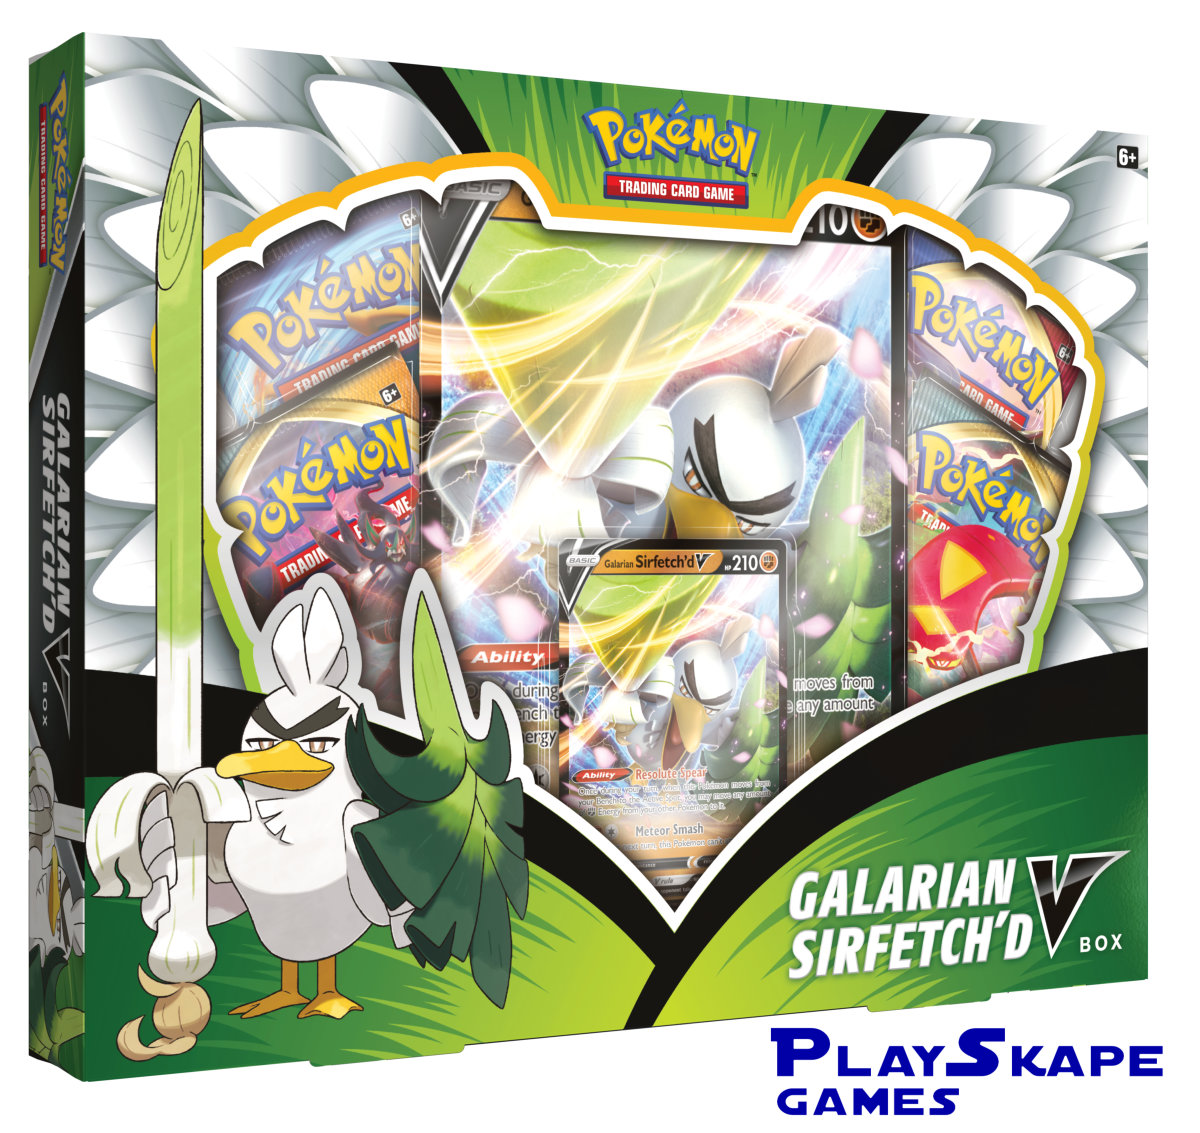 Galarian-Sirfetchd-V-Pokemon-Sword-Shield-Sealed-Collection-Box-TCG-2020-1